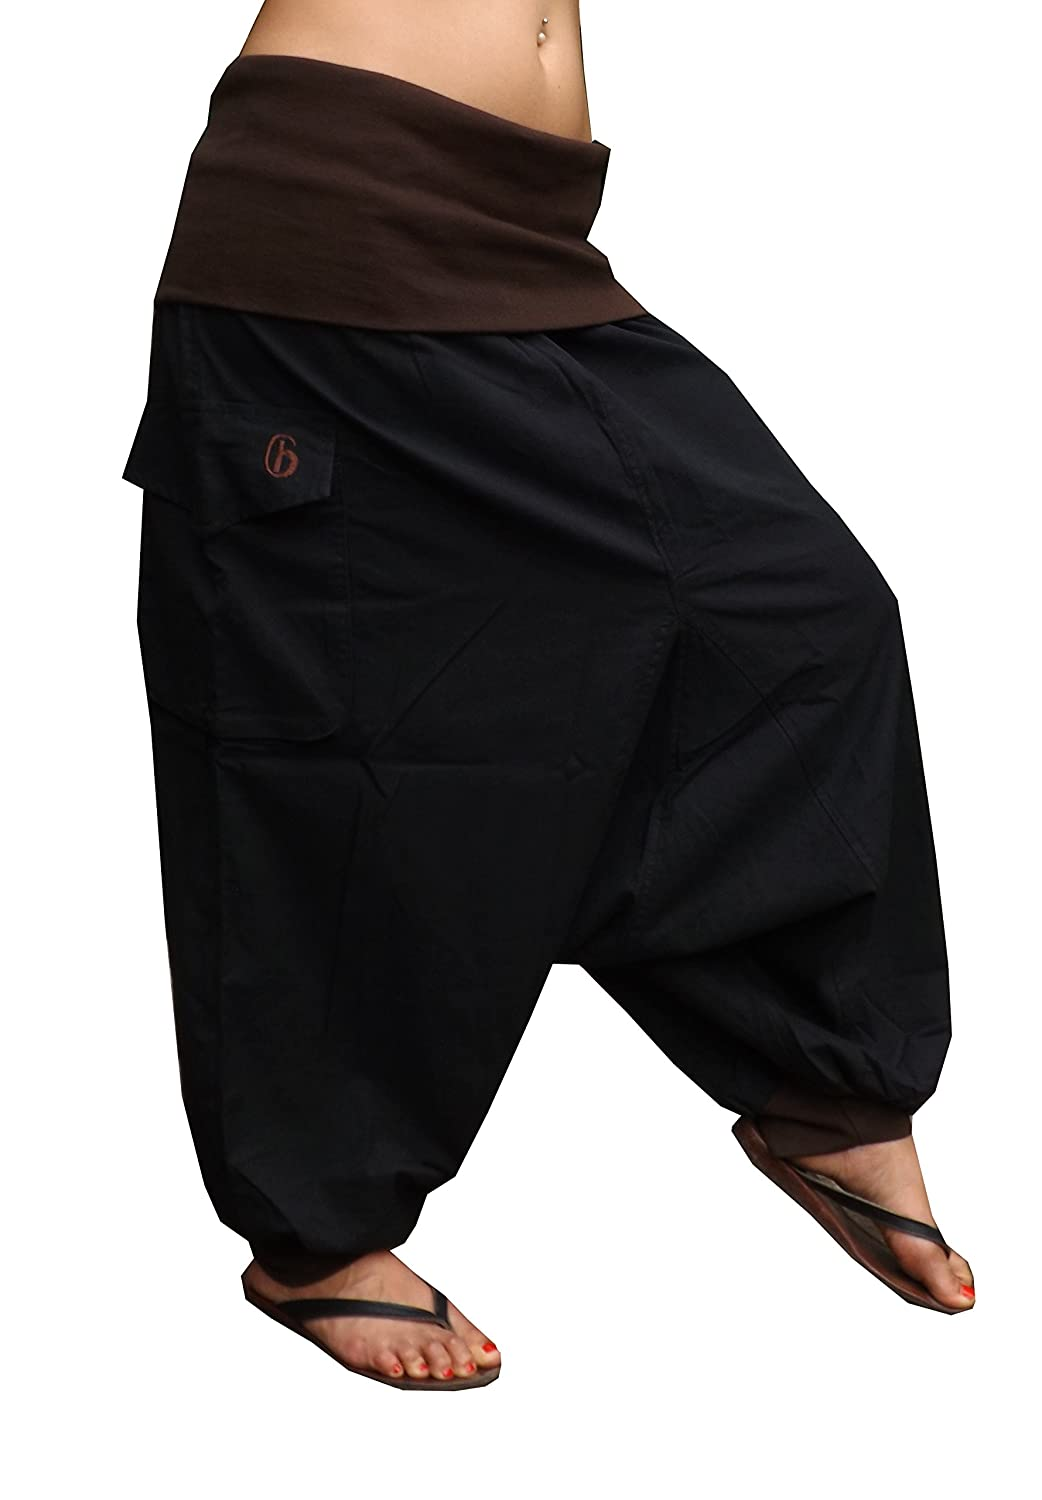 virblatt harem pants unisex onesize S-L aladdin pants alternative clothing - Morgen